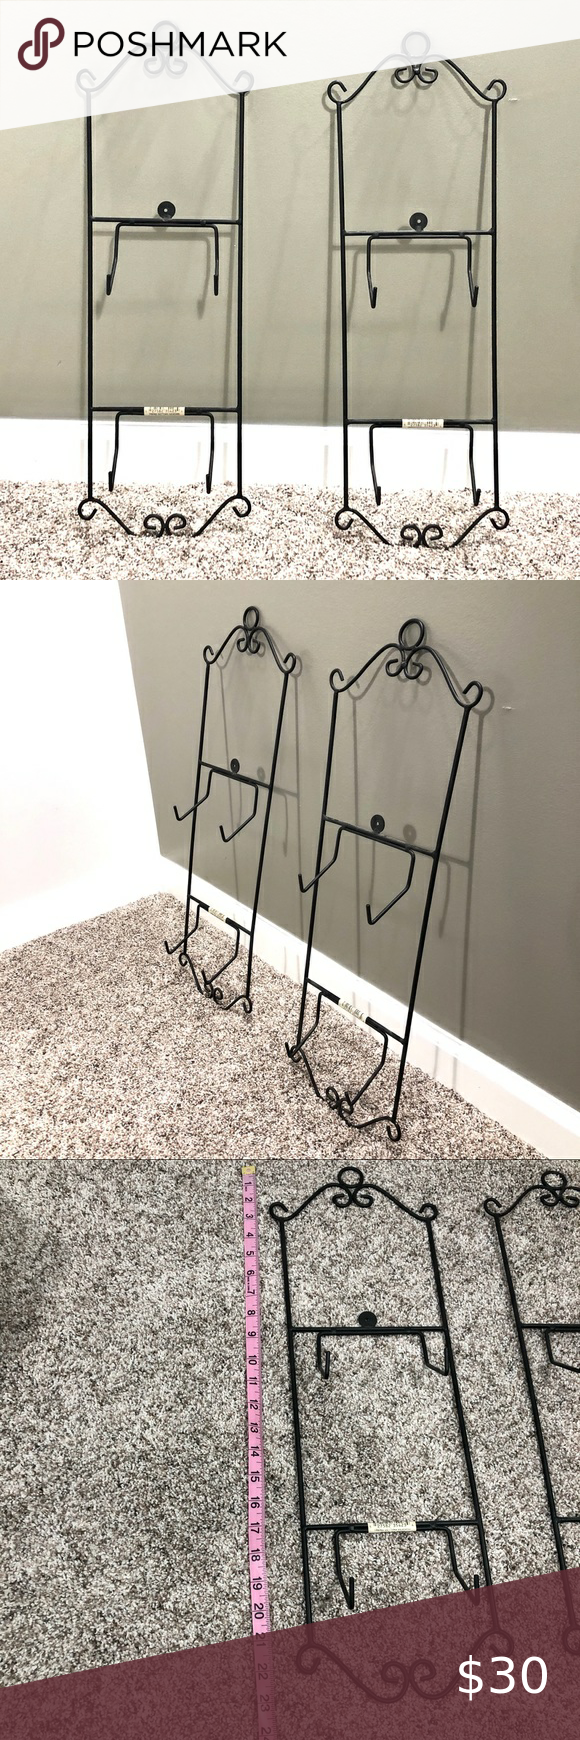 NEW Set of 2 Vertical Plate Racks These are new, never used. Set of 2 Vertical Plate Racks Can be used for plates or artwork. The simple scrolls upon the Plate Rack enhance the beauty of your decorative plates without distracting from their charm. Accents